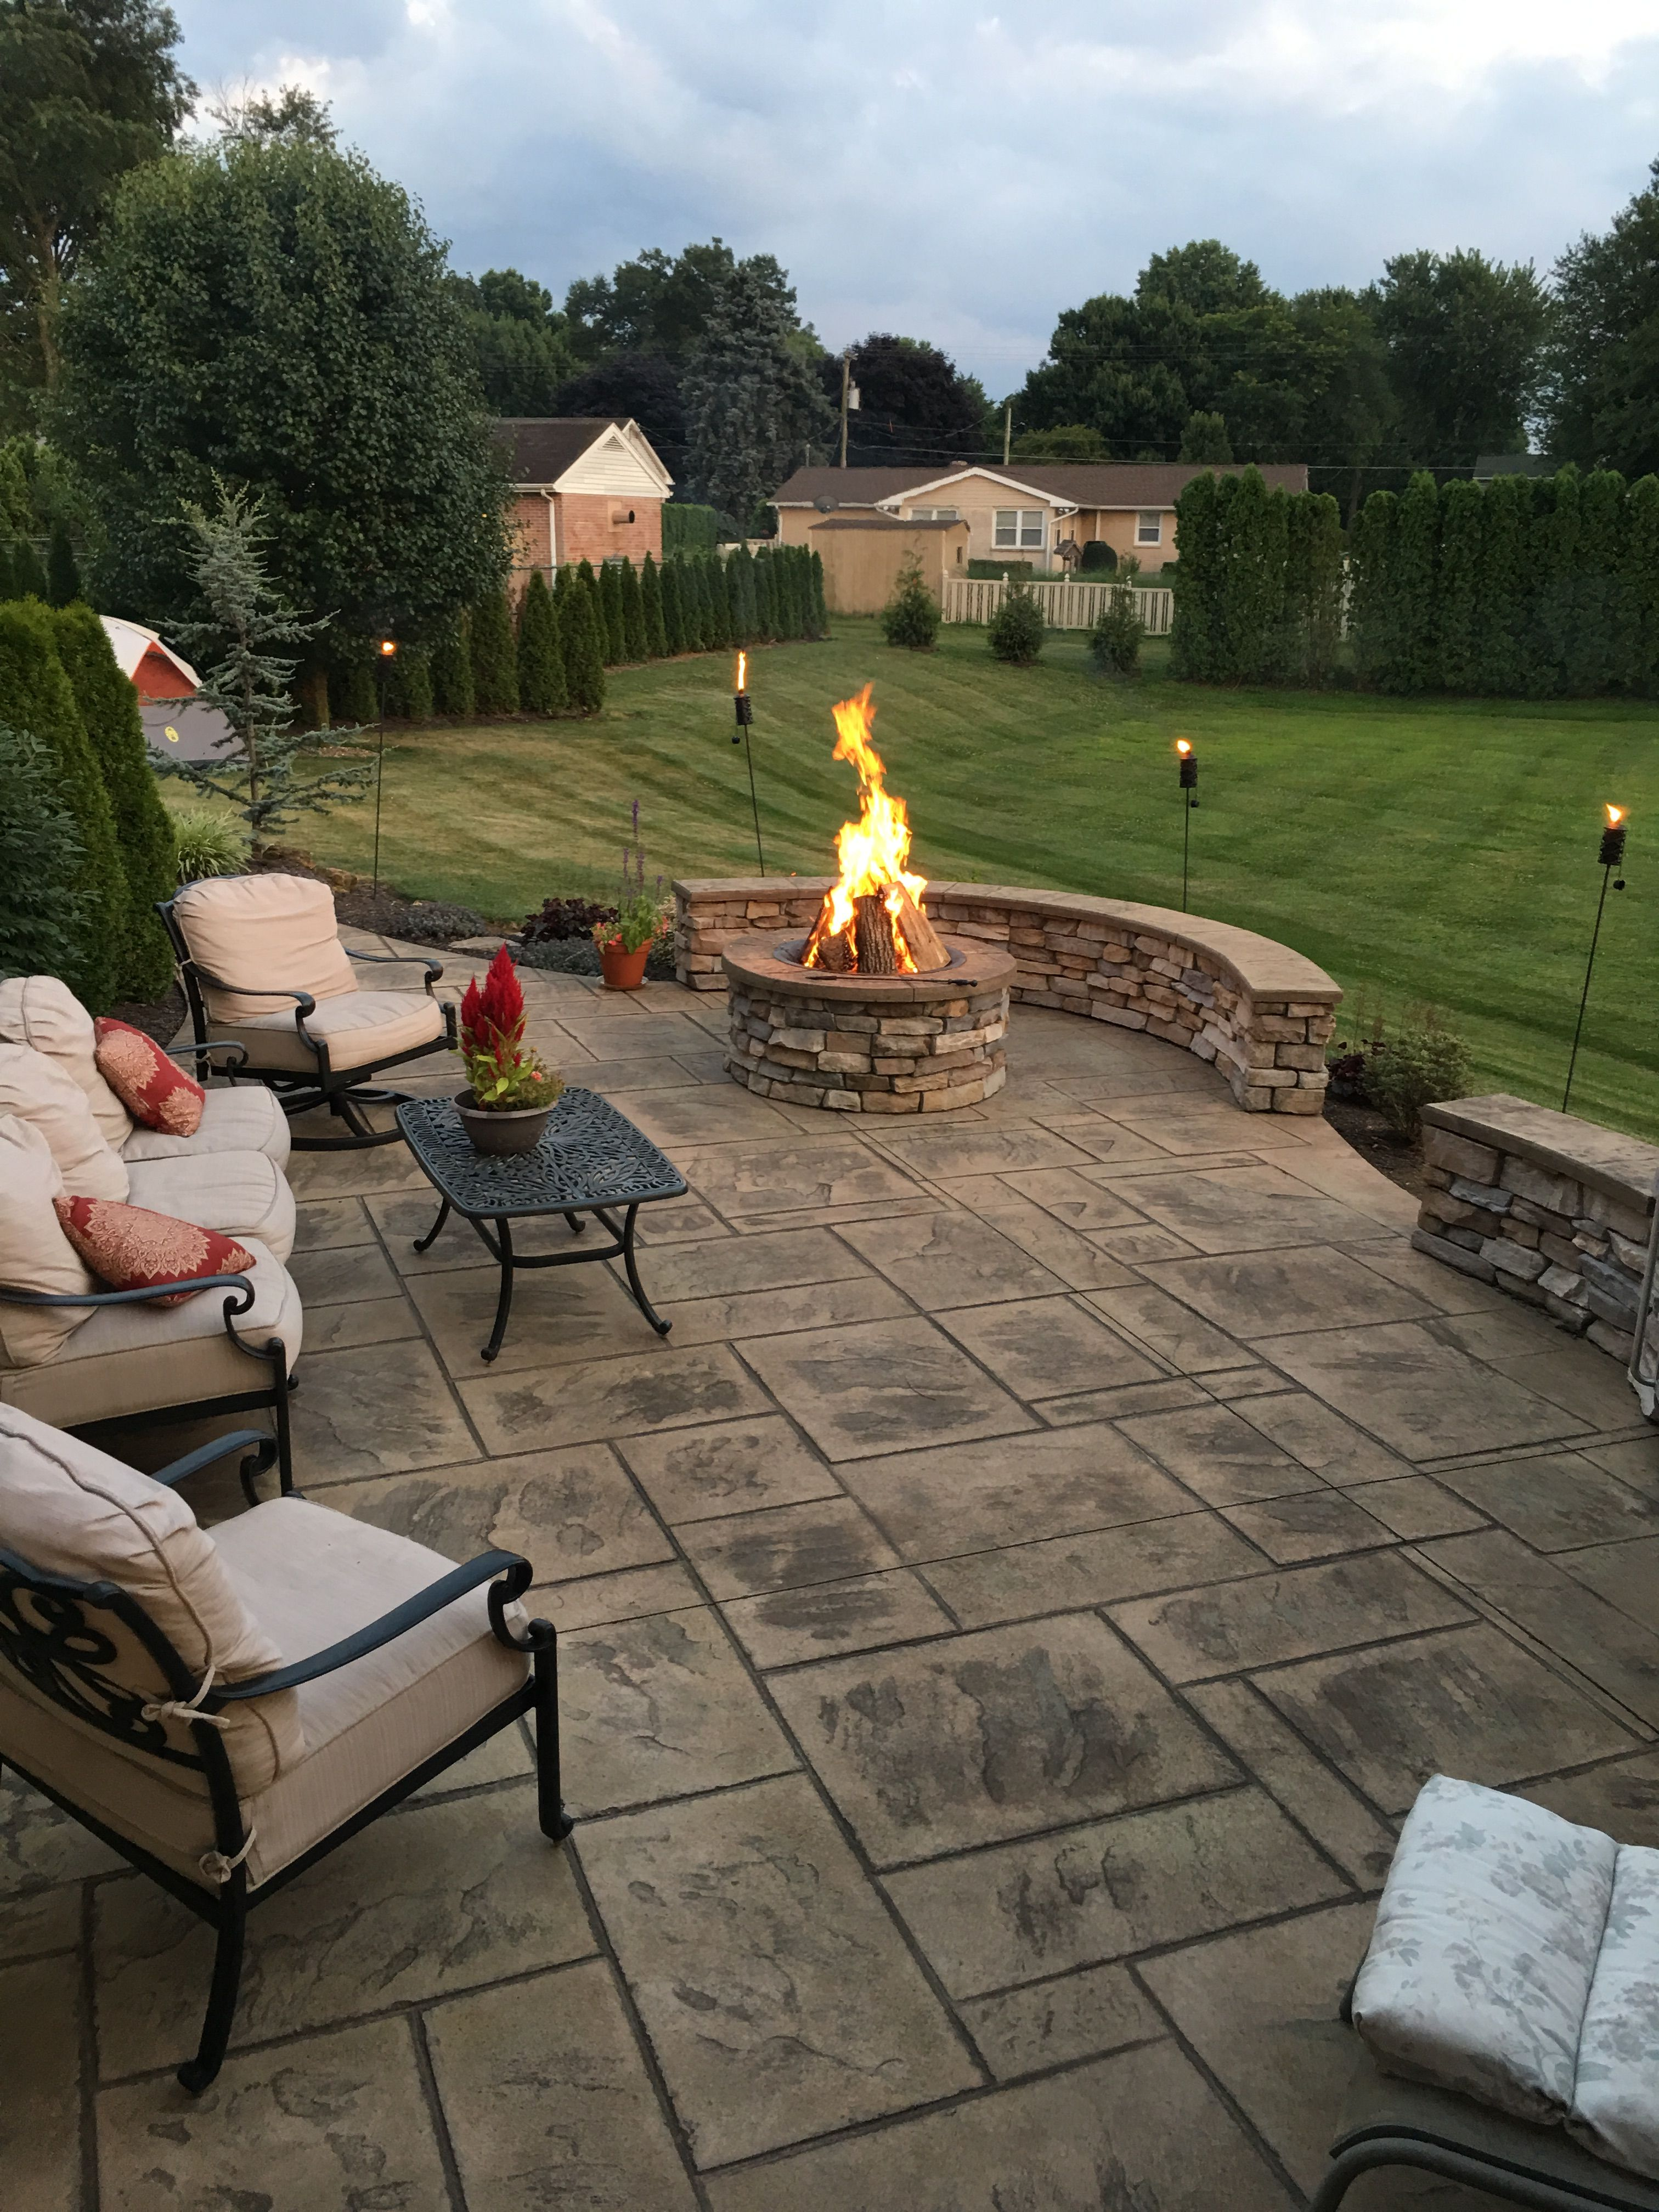 Stamped Concrete Patio With Stone Veneer Wall And Fire Pit Patio Stones Stone Patio Designs Concrete Patio Designs